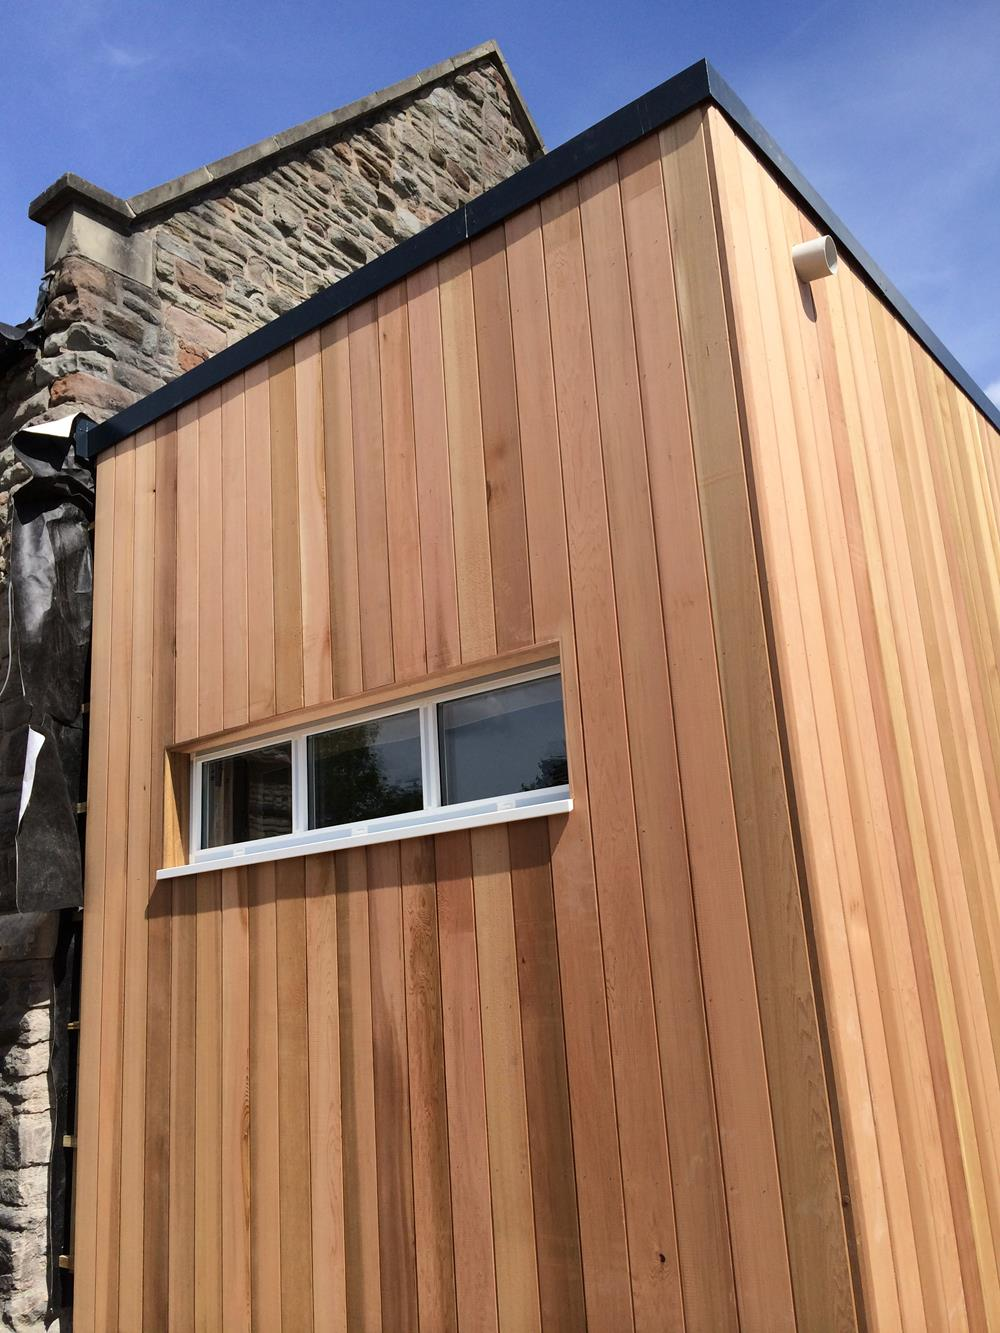 Building with Vertical Timber Cladding